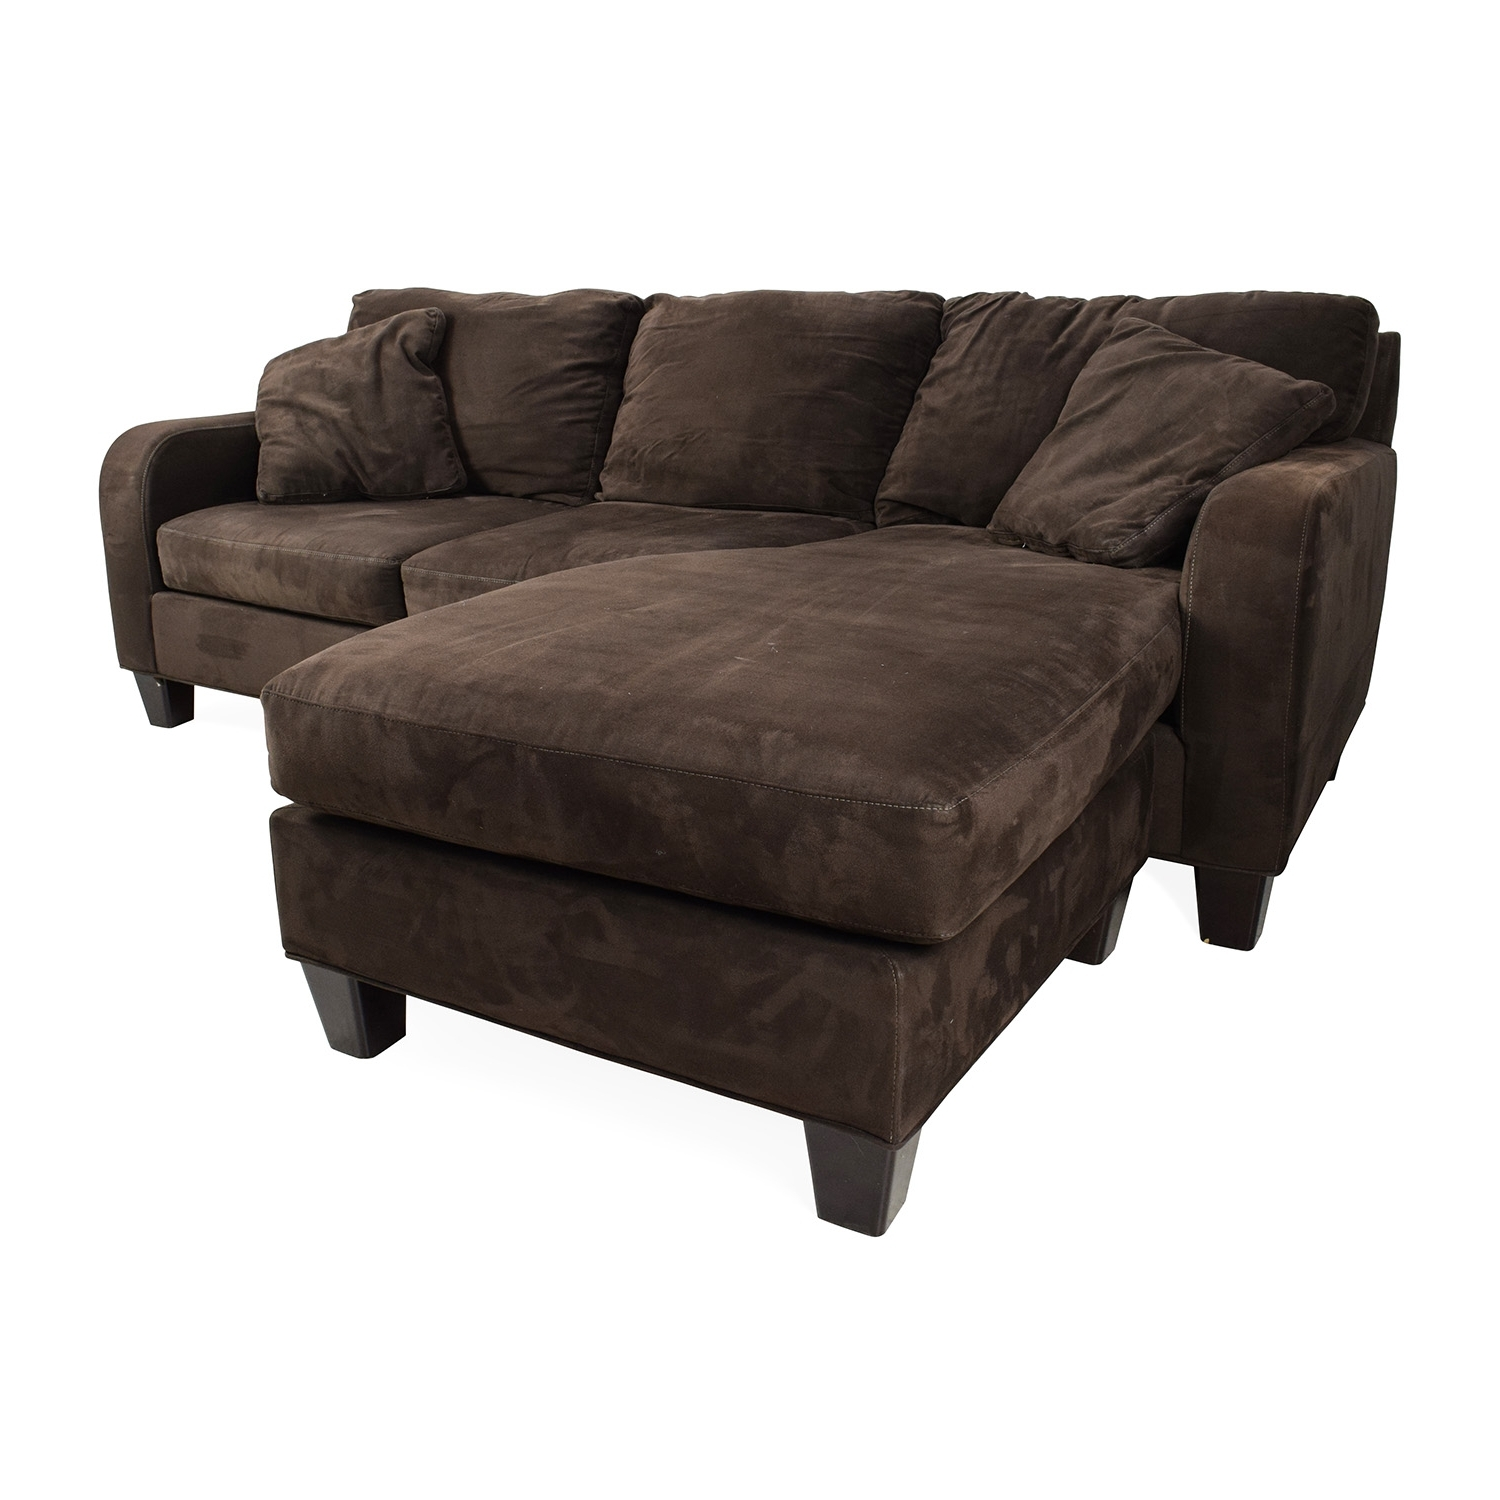 [%70% Off – Cindy Crawford Home Cindy Crawford Bailey Microfiber For Well Known Cindy Crawford Sofas|Cindy Crawford Sofas In Famous 70% Off – Cindy Crawford Home Cindy Crawford Bailey Microfiber|Popular Cindy Crawford Sofas Intended For 70% Off – Cindy Crawford Home Cindy Crawford Bailey Microfiber|2019 70% Off – Cindy Crawford Home Cindy Crawford Bailey Microfiber Regarding Cindy Crawford Sofas%] (View 7 of 20)